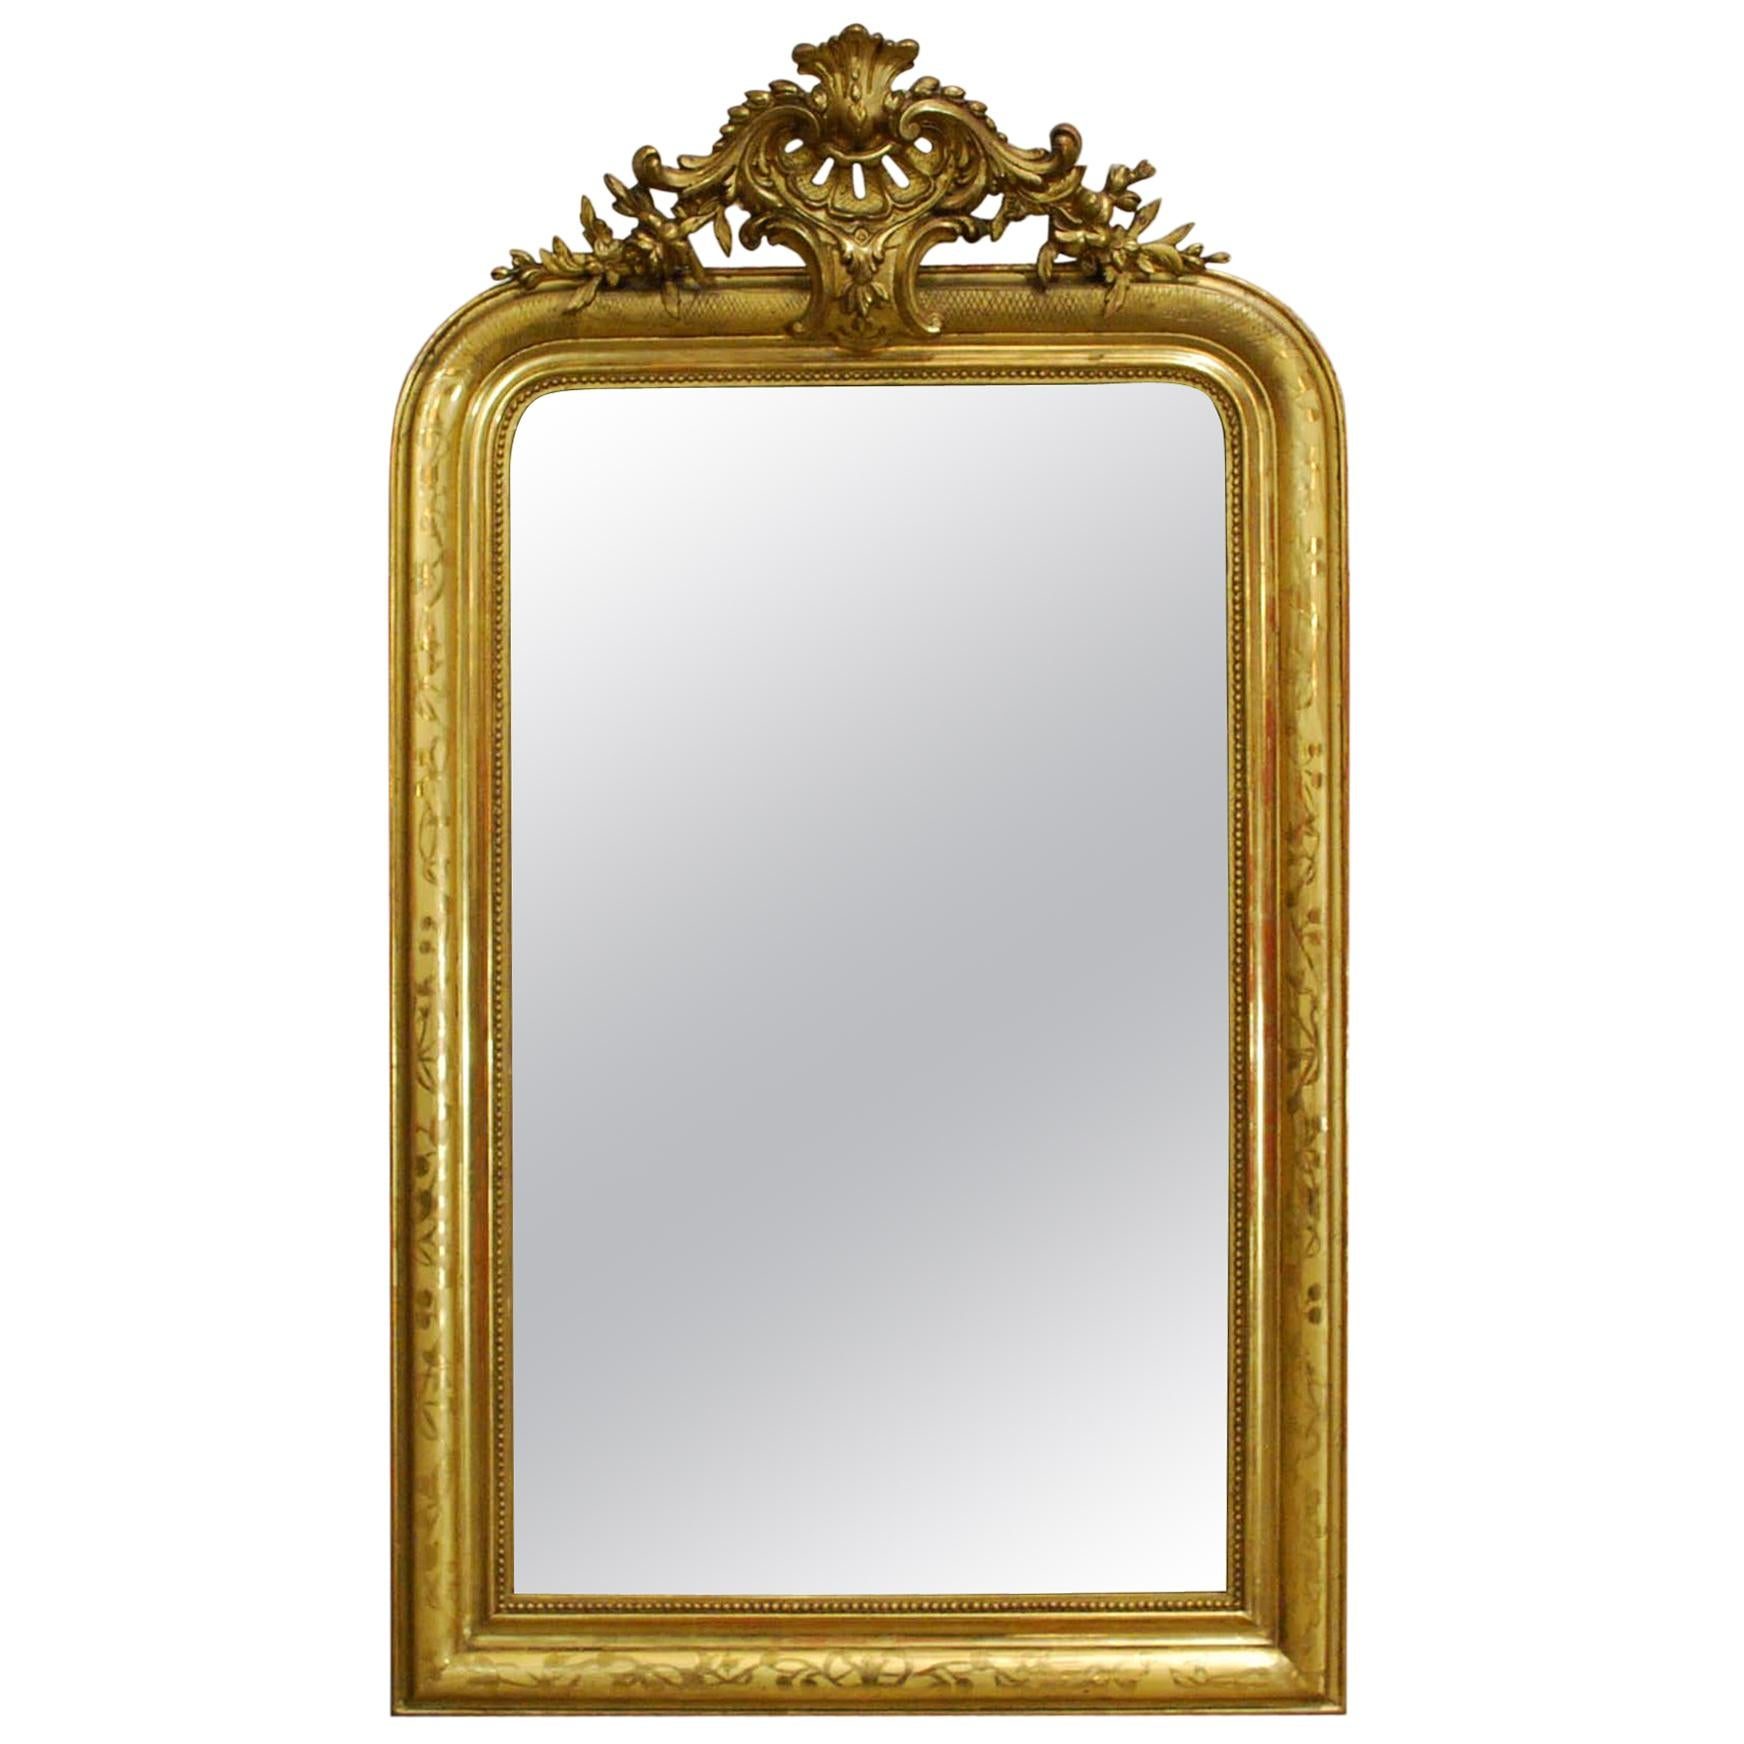 Antique French Gold Leaf Gilt Louis Philippe Mirror with Crest